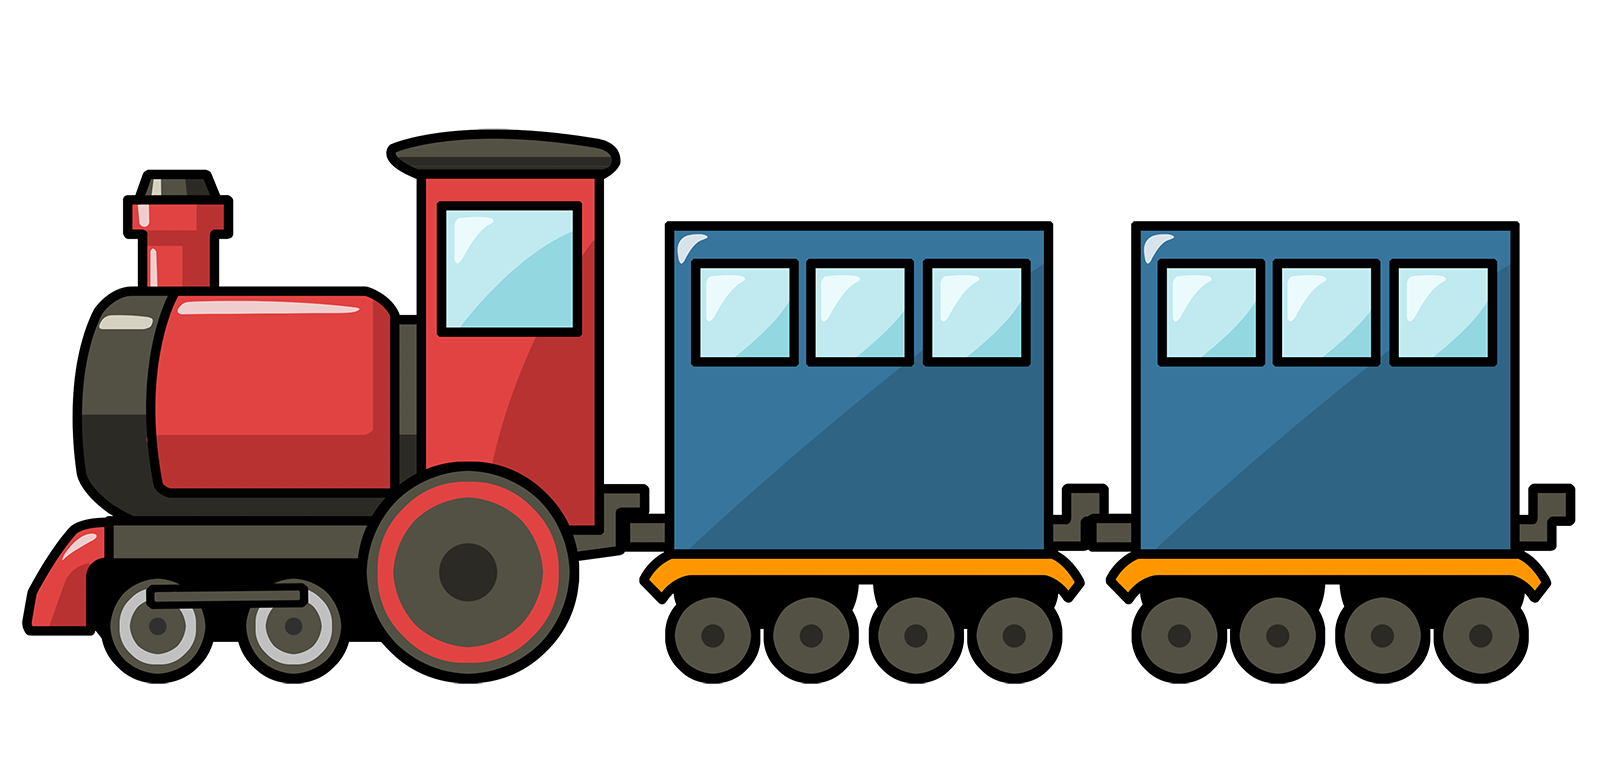 Transparent train side. Free steam clipart download